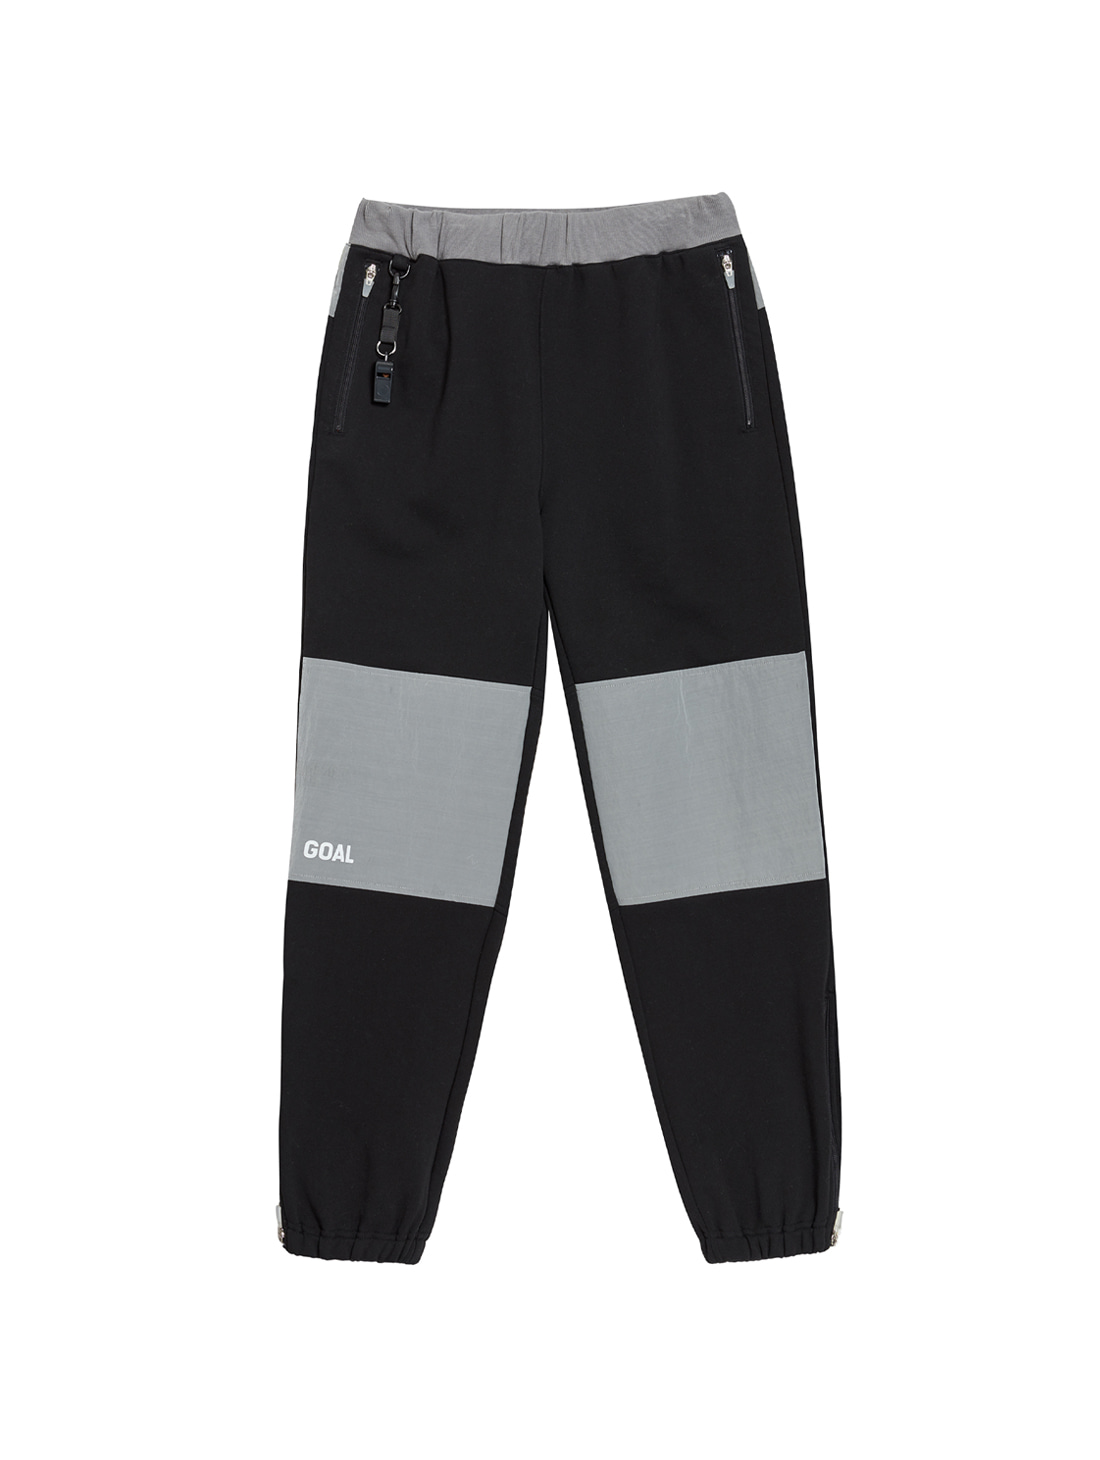 GOALSTUDIO NYLON METAL MIXED TRACK PANTS - BLACK